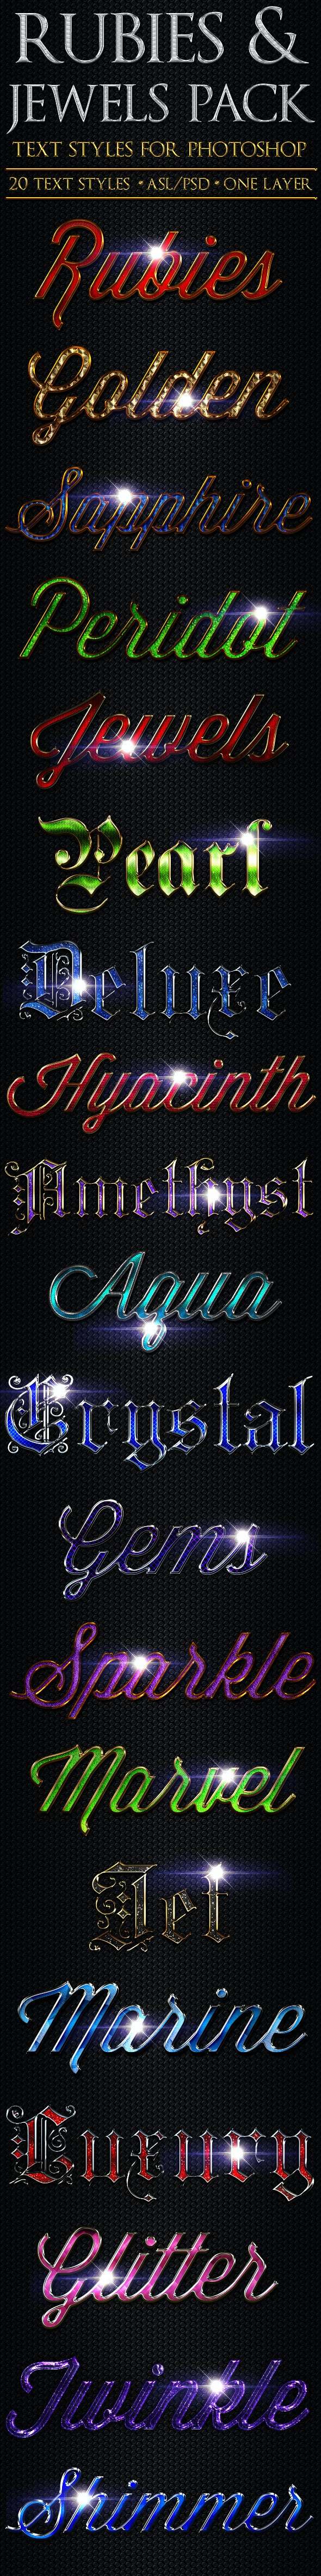 Rubies & Jewels - Text Styles - Text Effects Styles